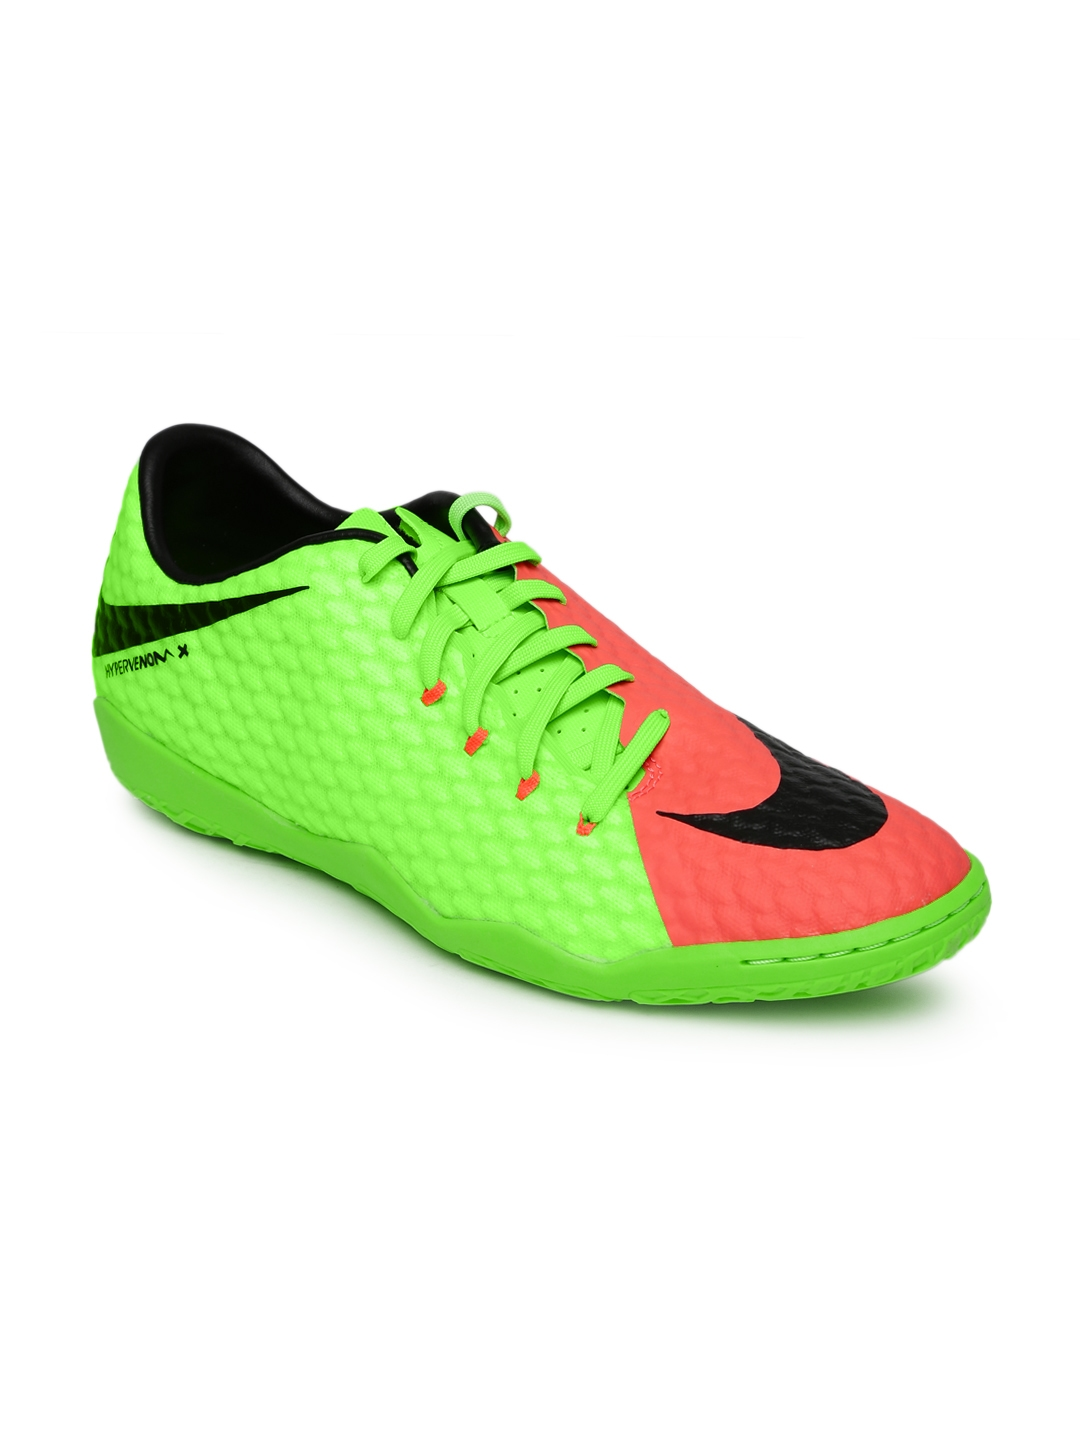 Shoes Nike for men football pictures video